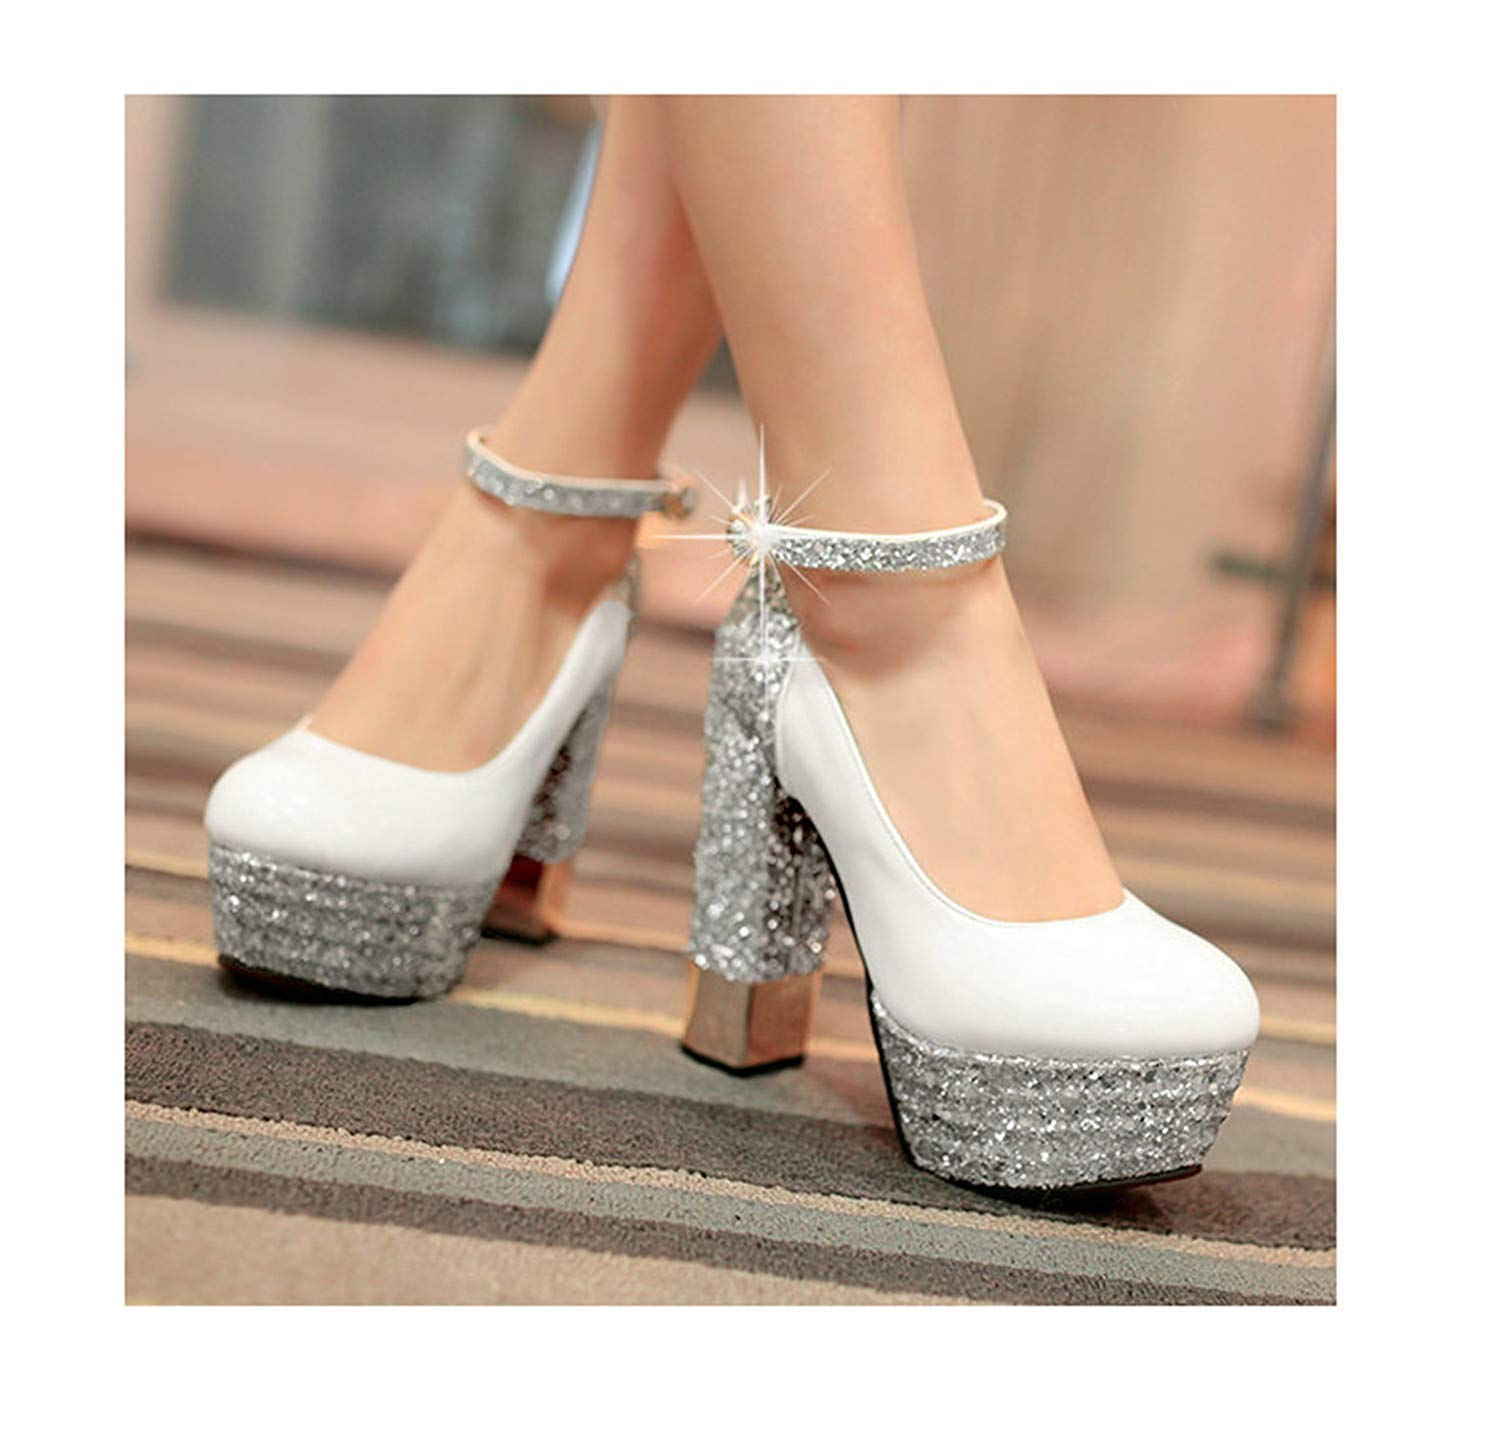 Angshanxia Fashion Platform Pumps Sexy High-Heeled Shoes Heels Round Toe Platform Shoes Women's Wedding Prom Shoes Size32-43 Heel 13cm White 4.5